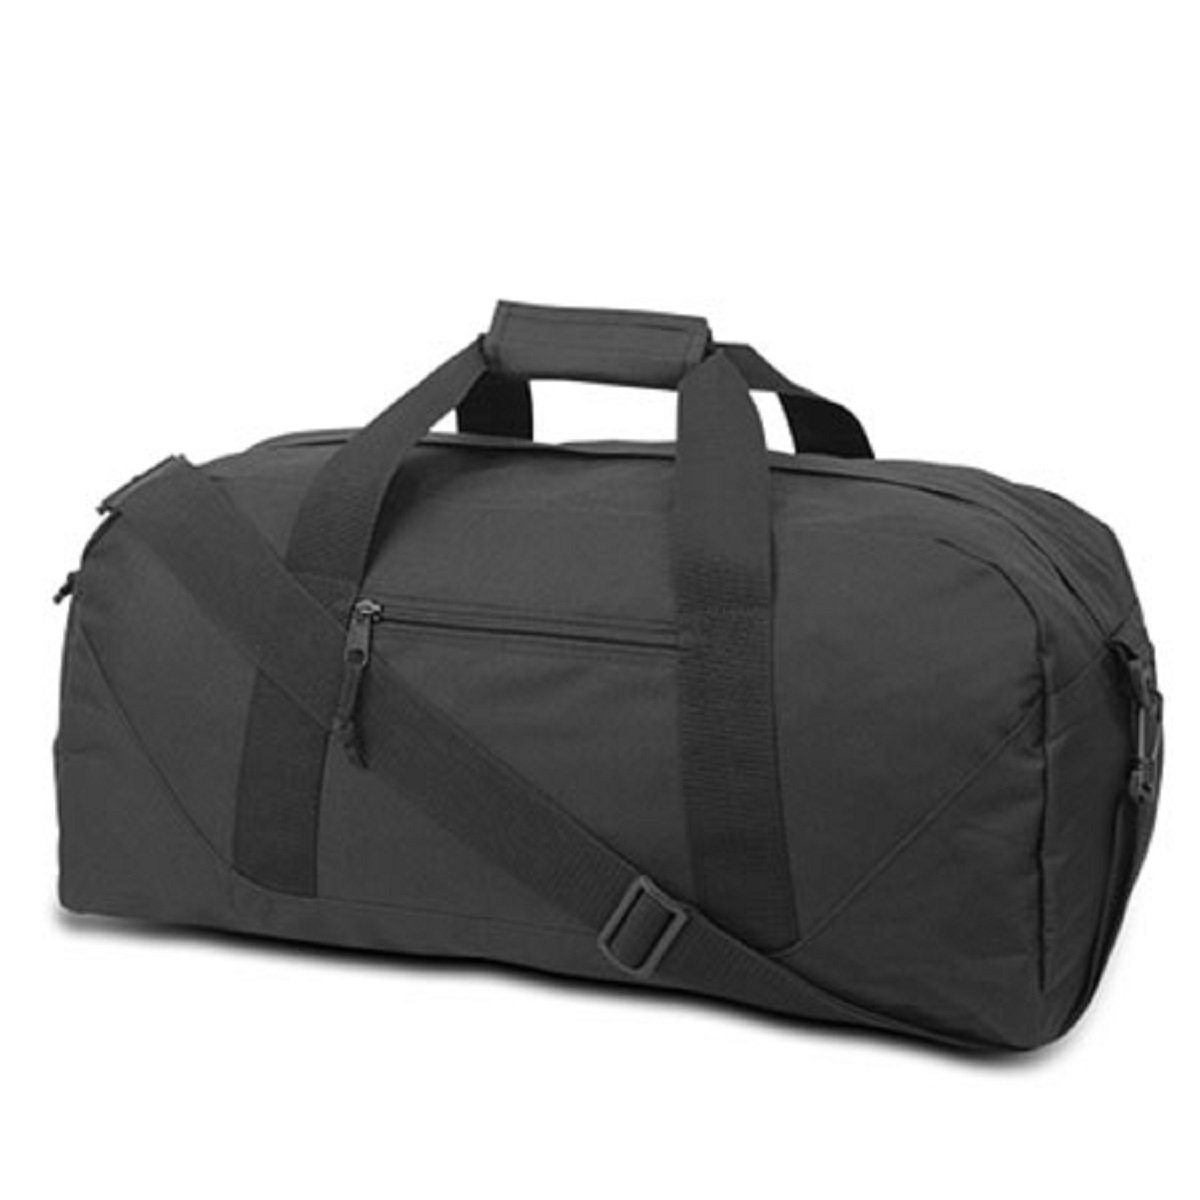 LARGE SQUARE DUFFEL, Black, Case of 12 by DollarItemDirect